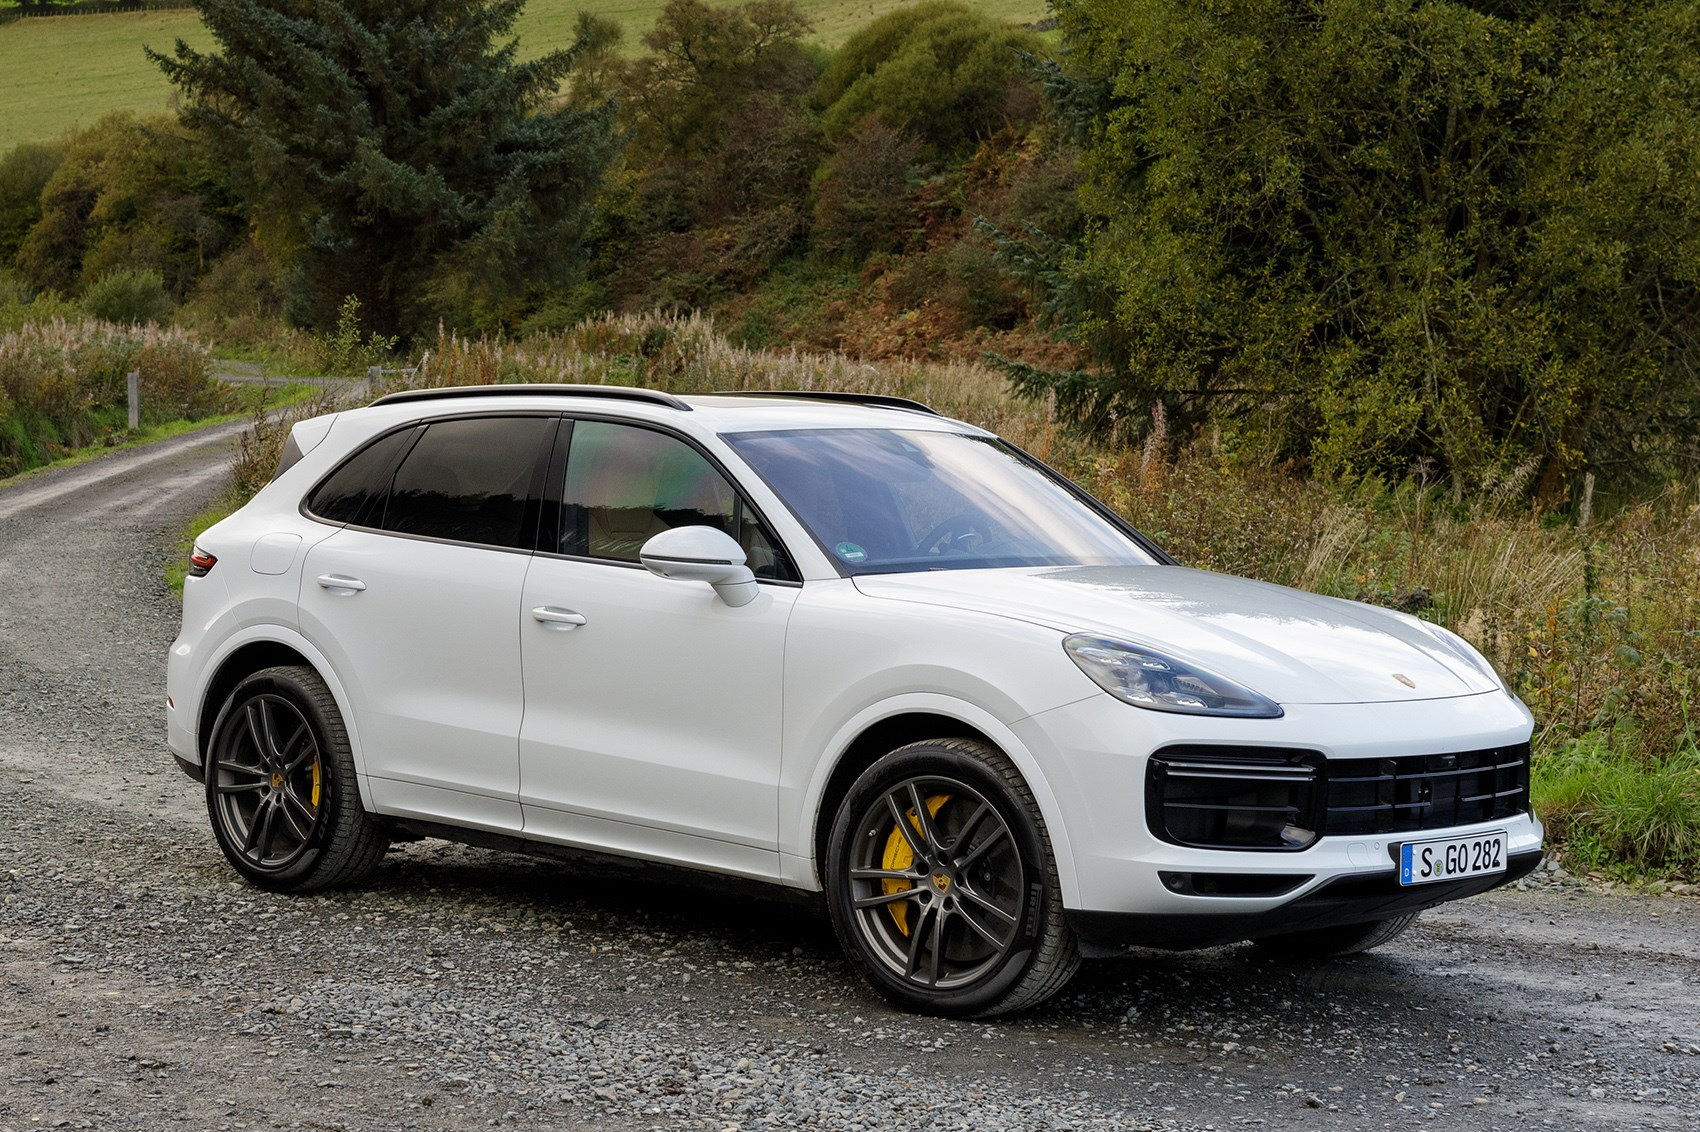 Porsche Cayenne Suv Review Summary Parkers